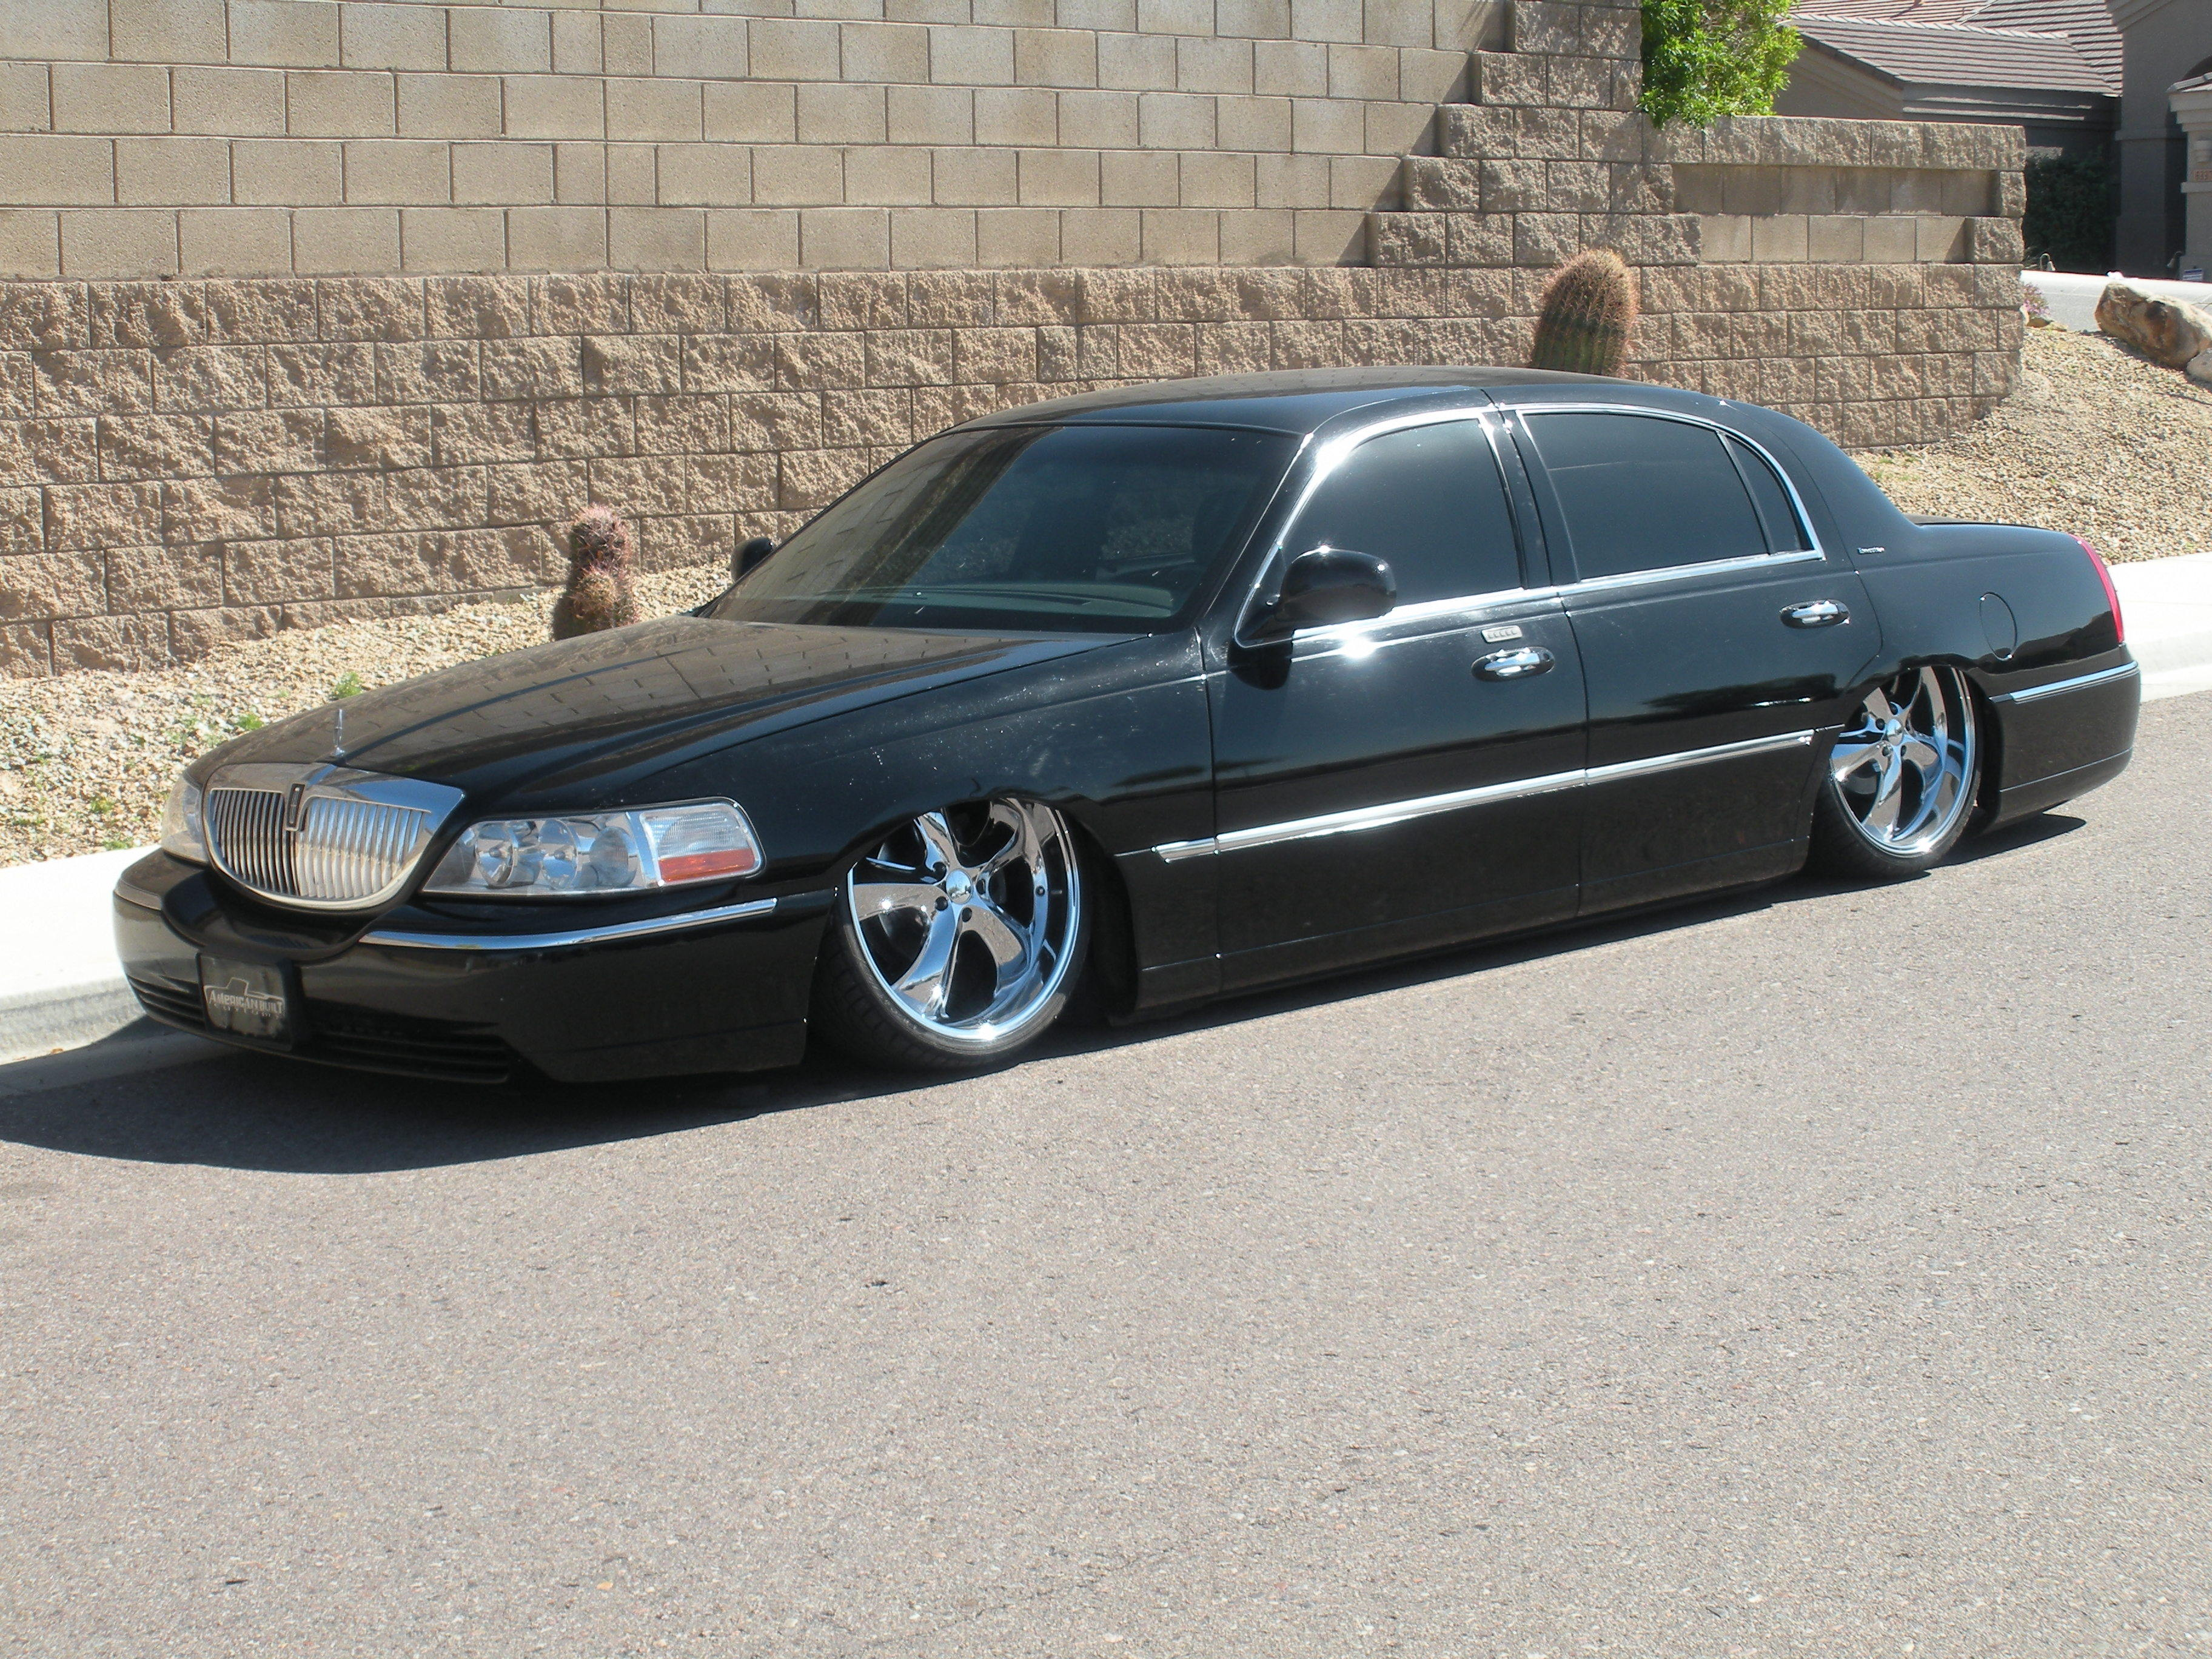 townlow 2003 lincoln town car specs photos modification info at cardomain. Black Bedroom Furniture Sets. Home Design Ideas